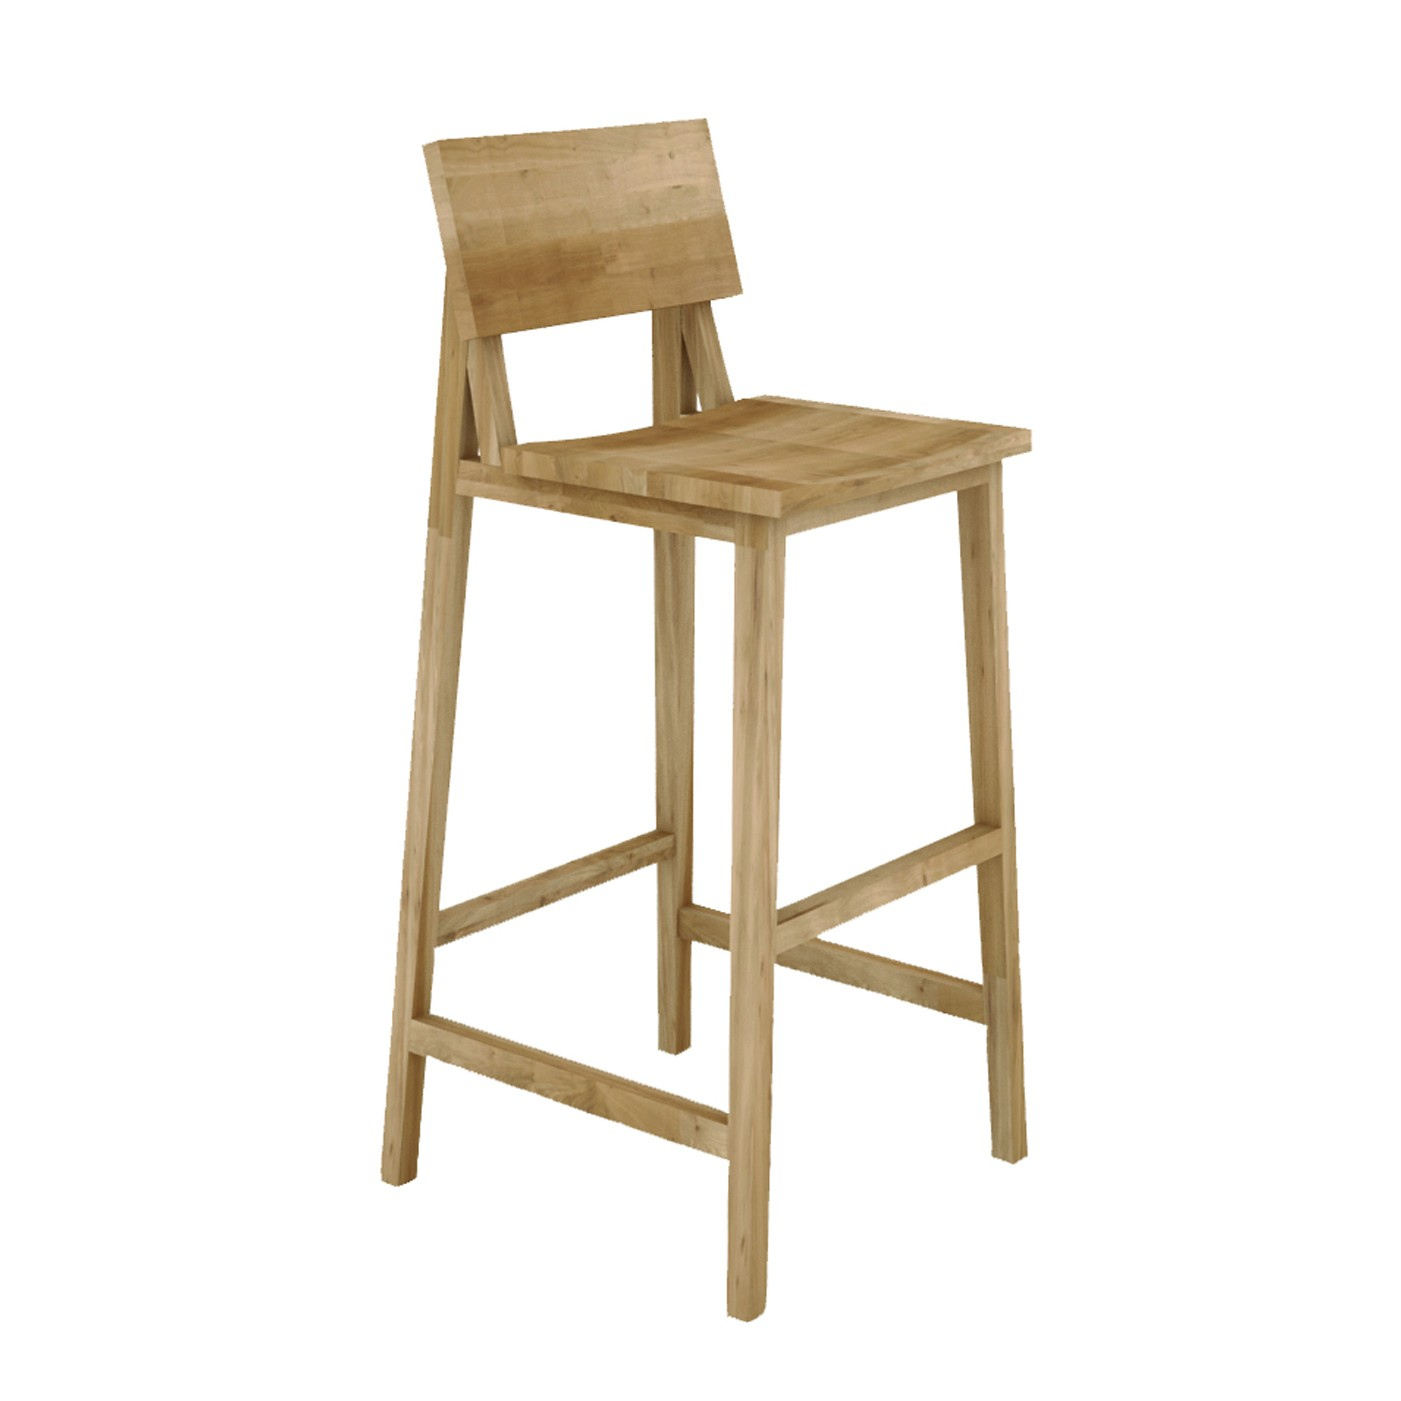 Ethnicraft Oak N4 Kitchen Counter Stool Without Amrest